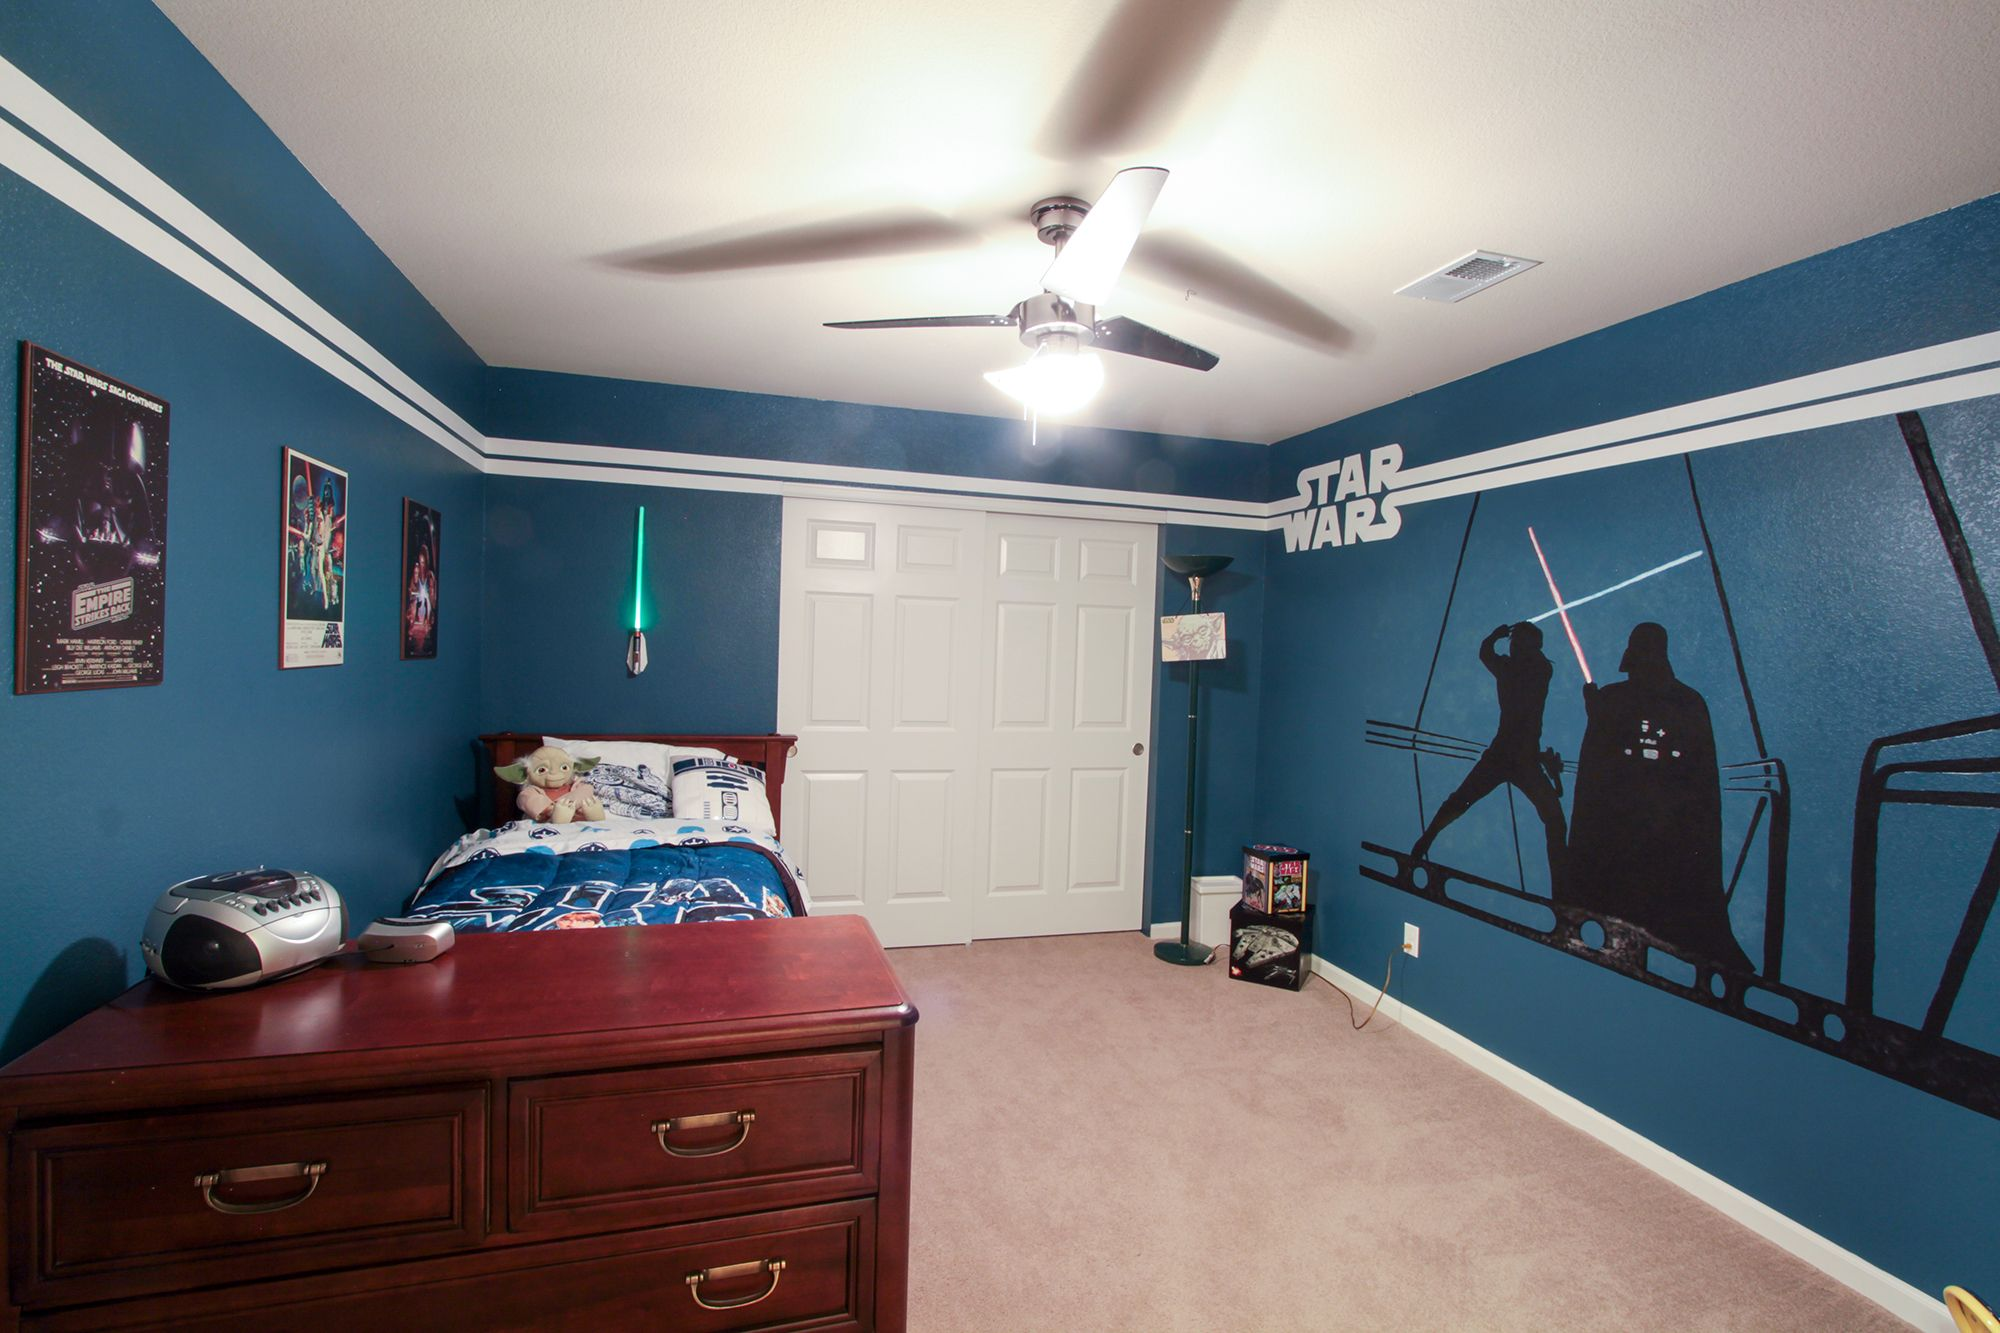 Star Wars Bedroom Paint Colours Google Search Star Wars Room Decor Star Wars Bedroom Star Wars Room